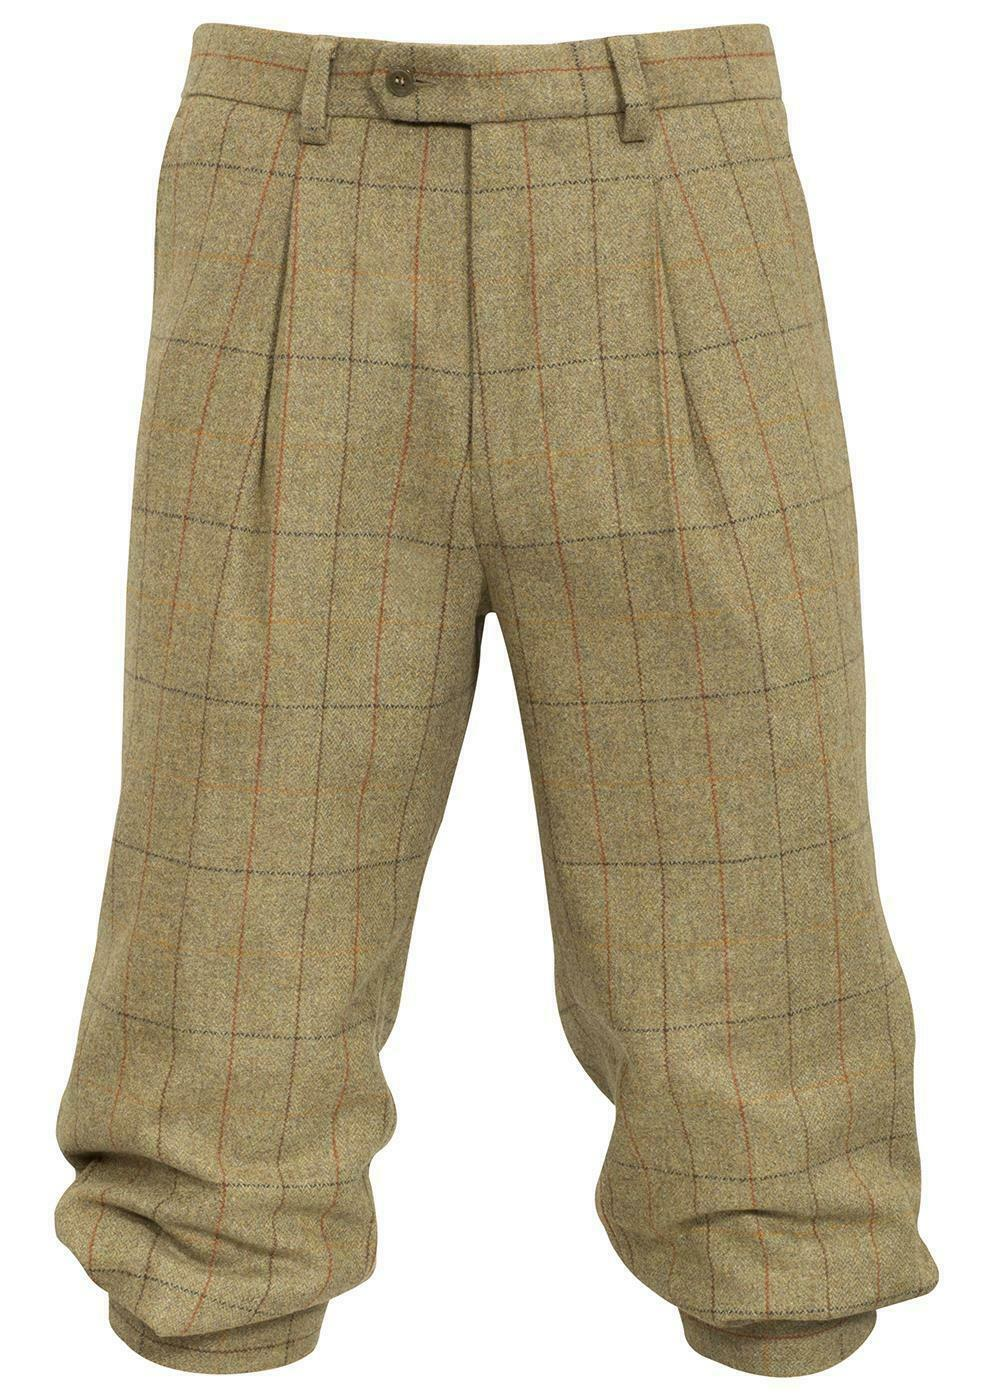 Alan Paine Combrook Tweed Breeks --Elm